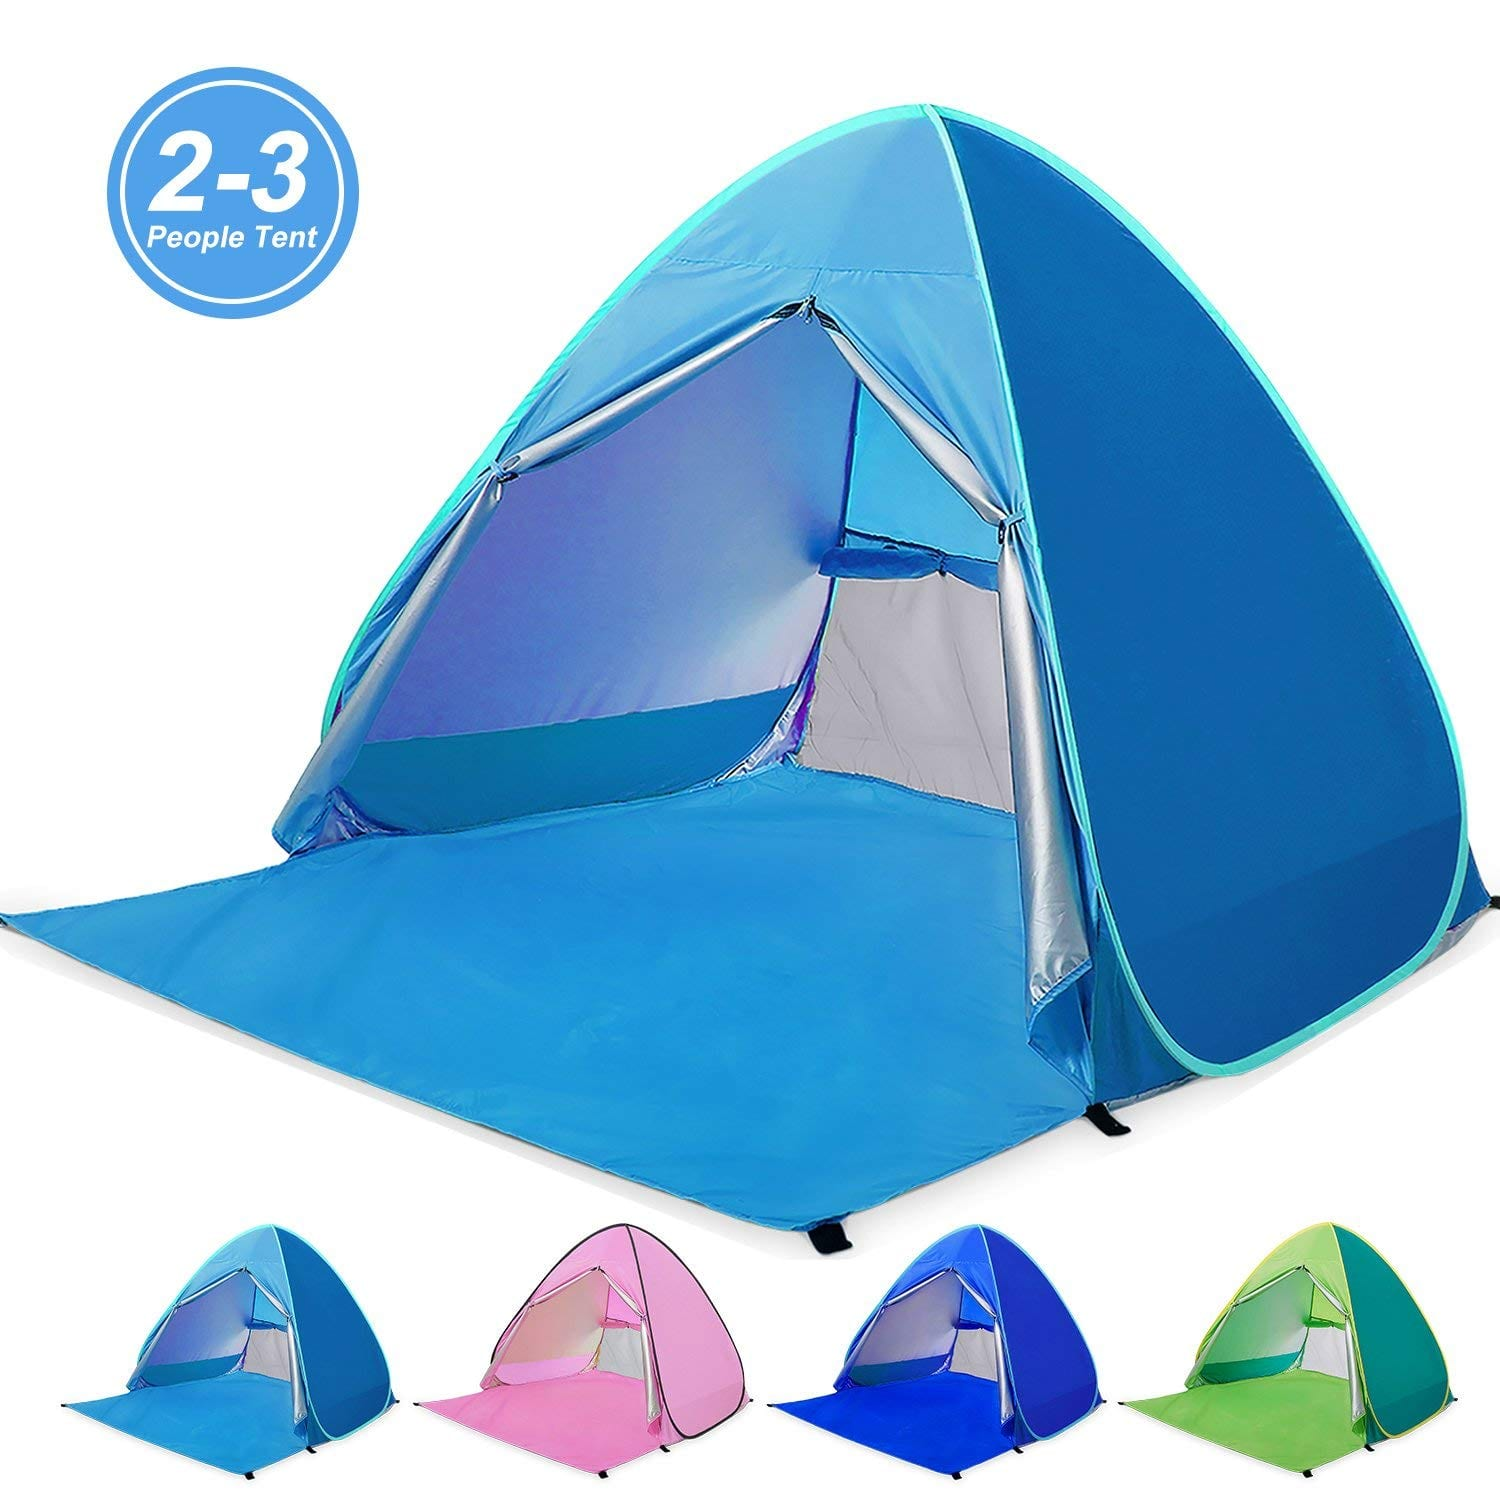 Amagoing Automatic Pop Up Beach Tent 2 3 Person Cabana Sun Shelter Umbrella Great